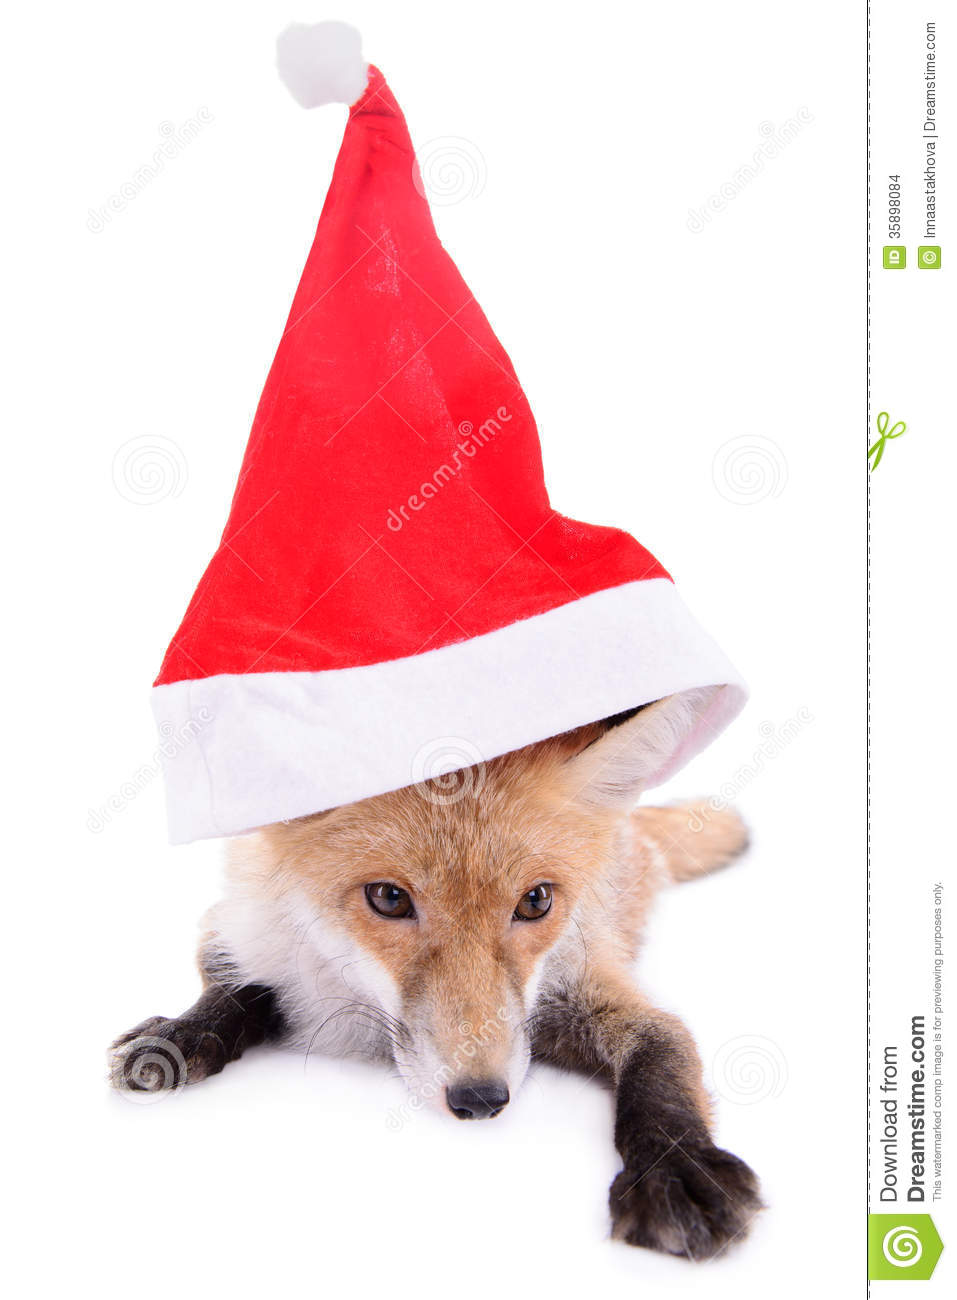 Fox with a hat new year or christmas animal isolated on white - Animal Christmas Fox Hat Isolated New Red White Year